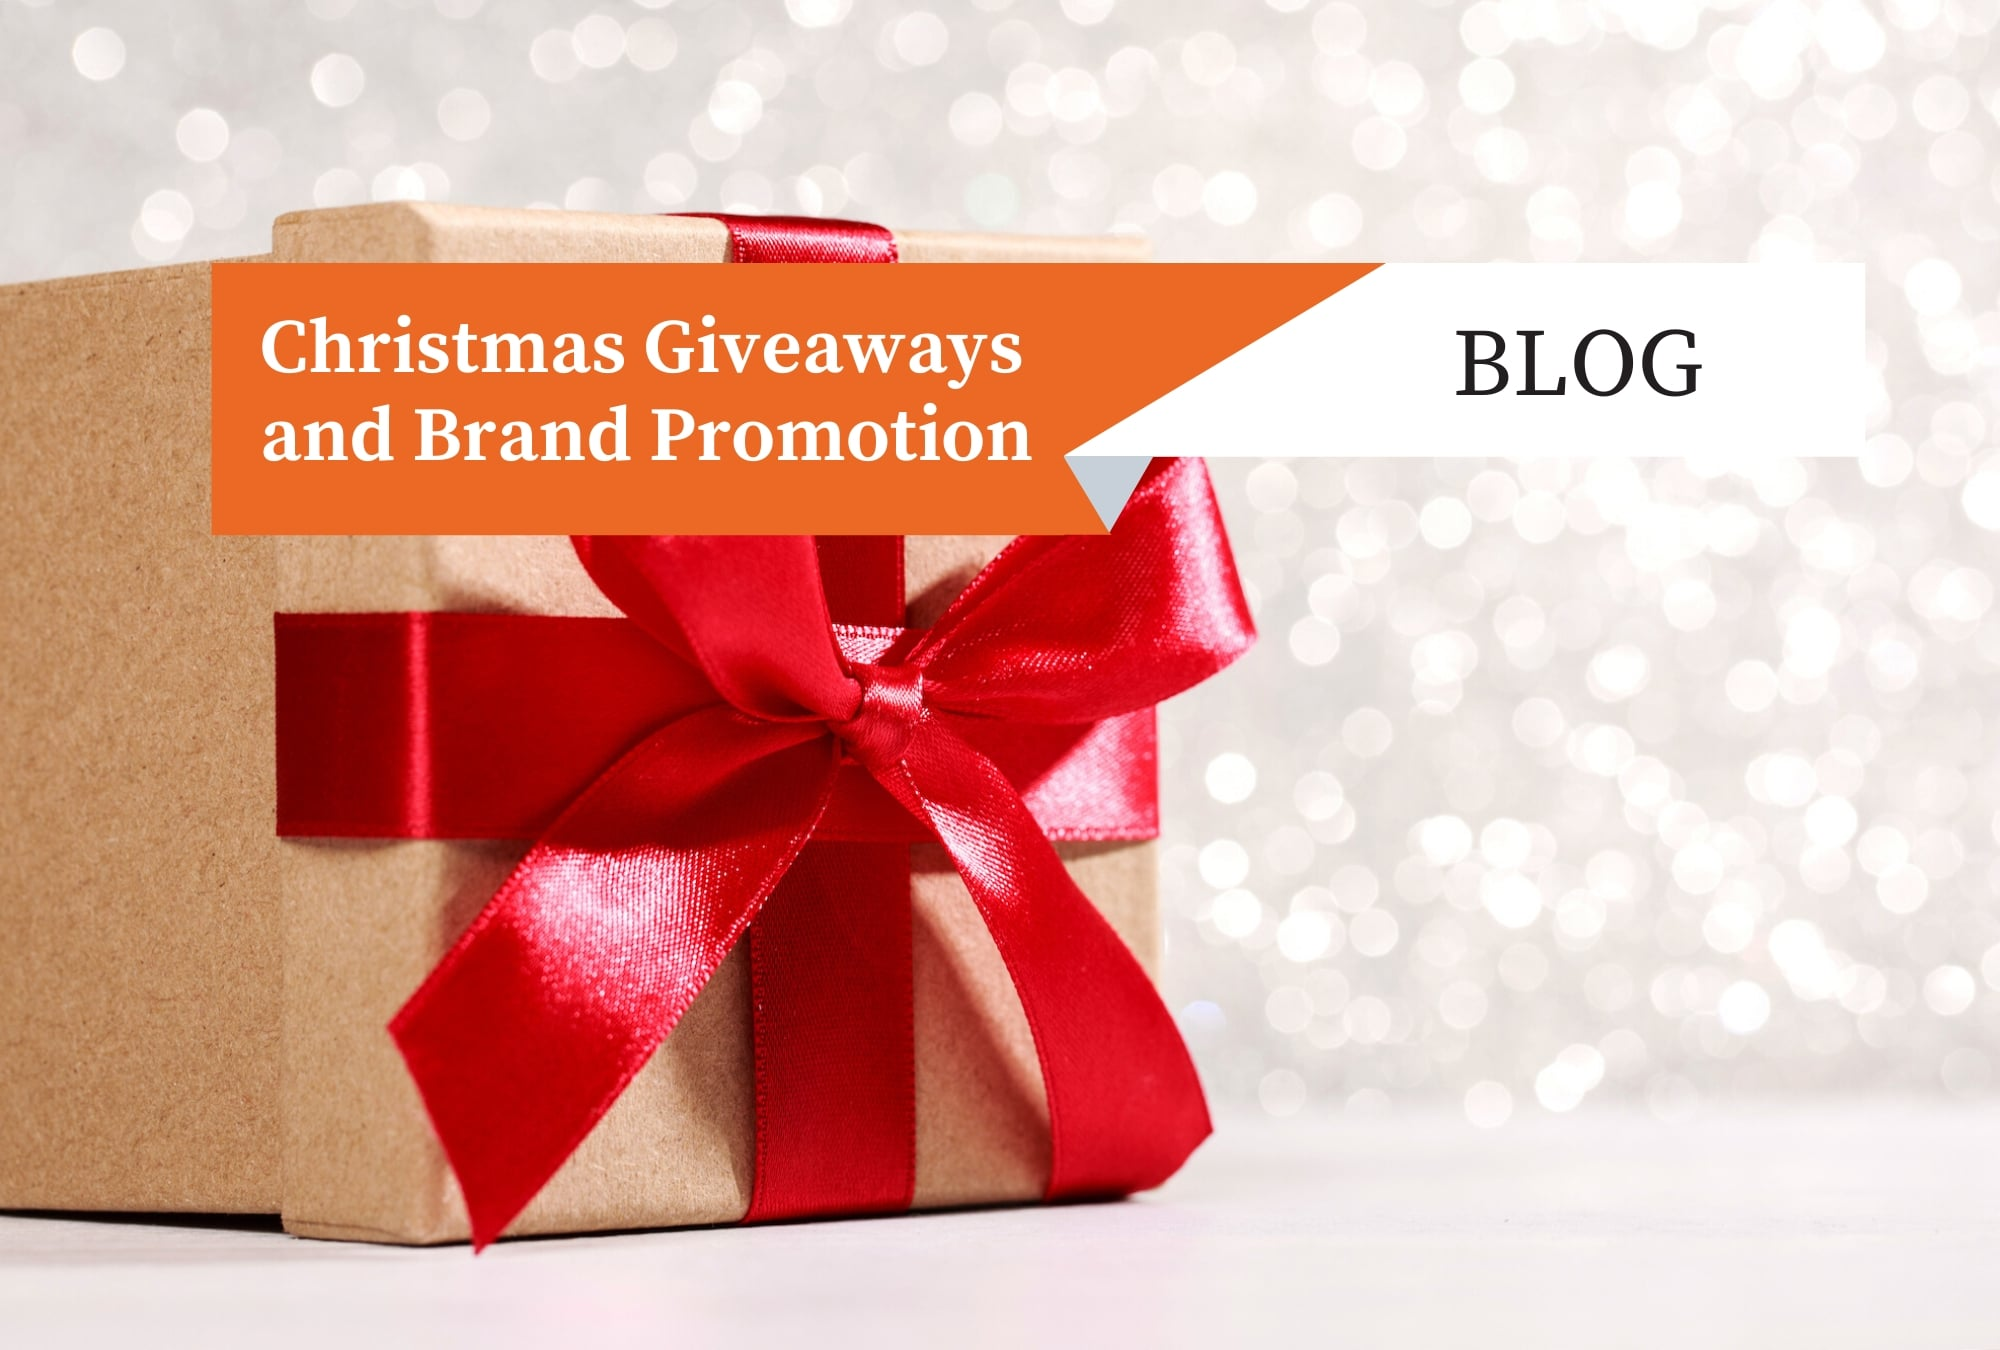 Christmas Giveaways and Brand Promotion